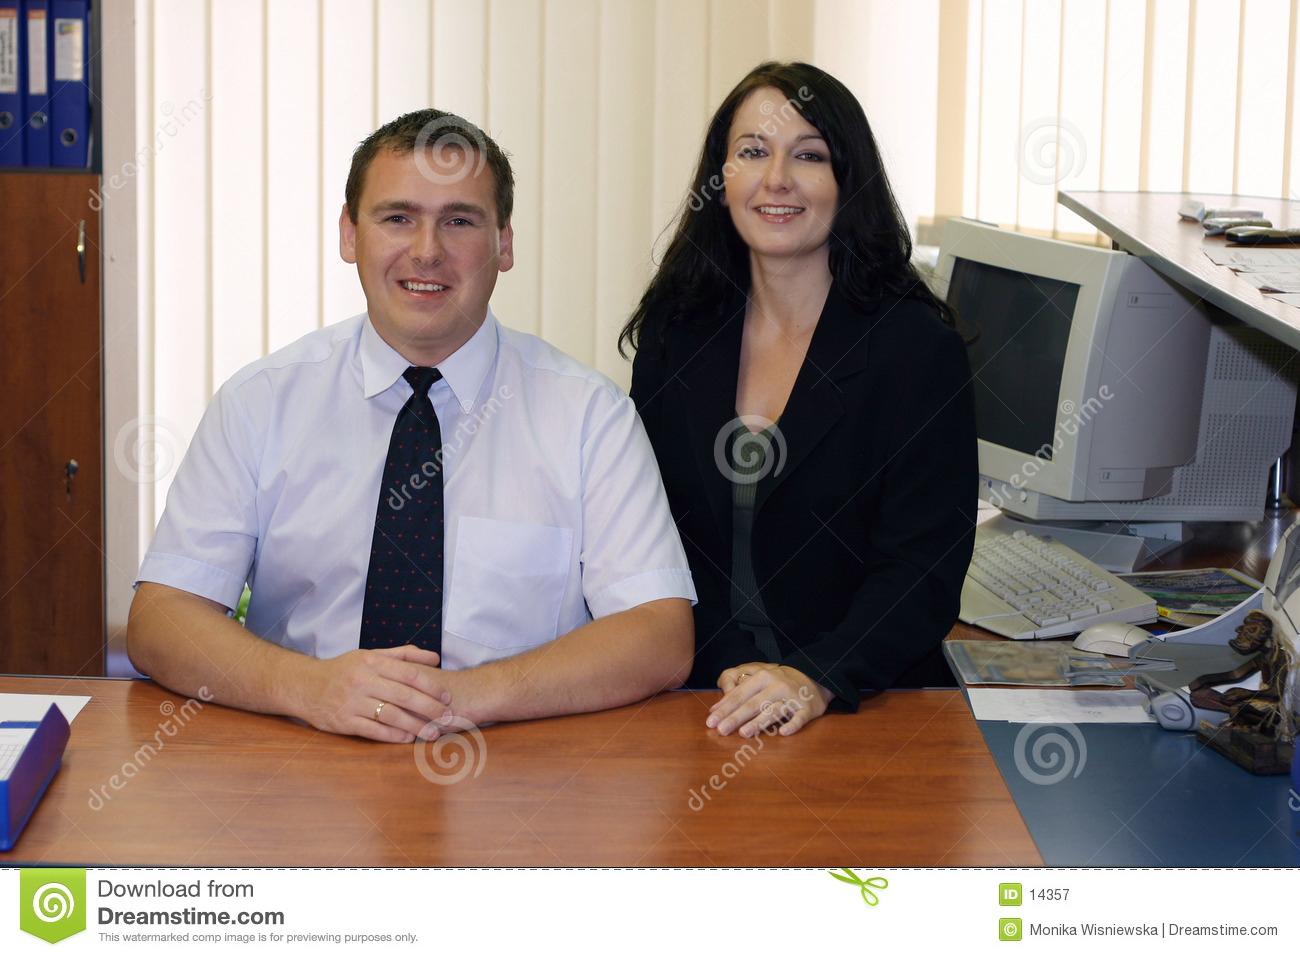 Two business executives